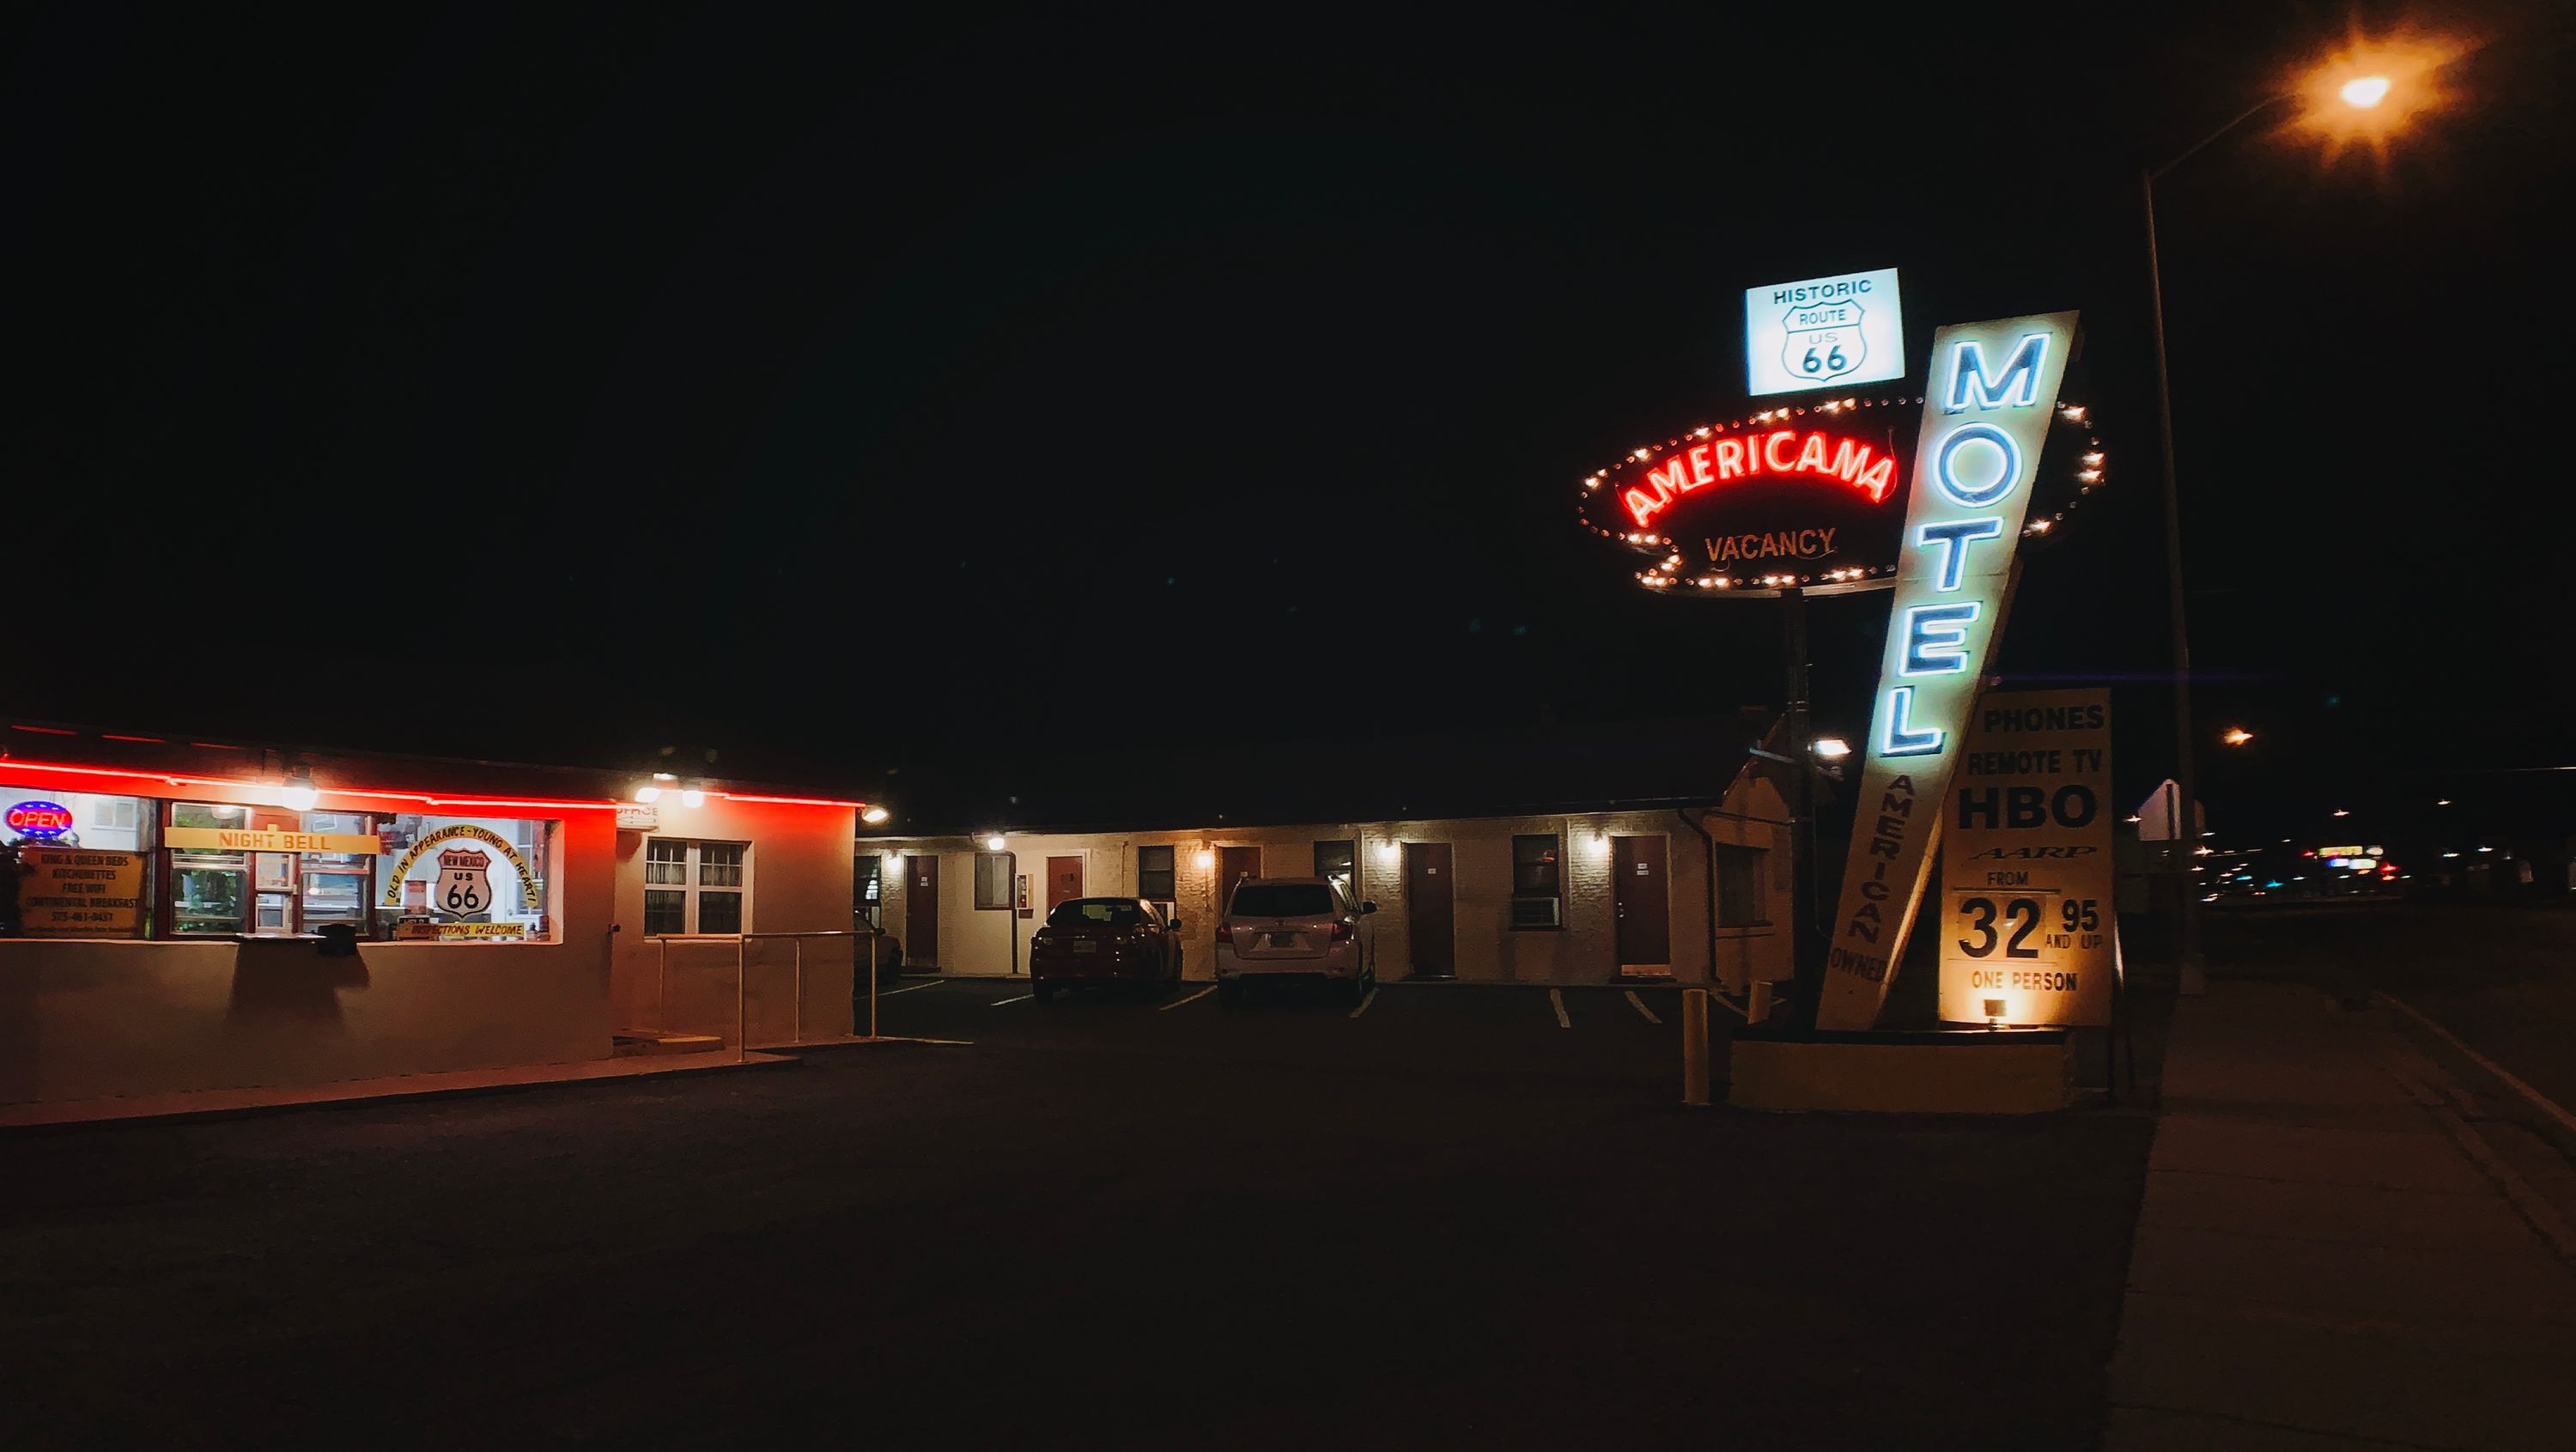 Americana Motel in Tucumcari, NM